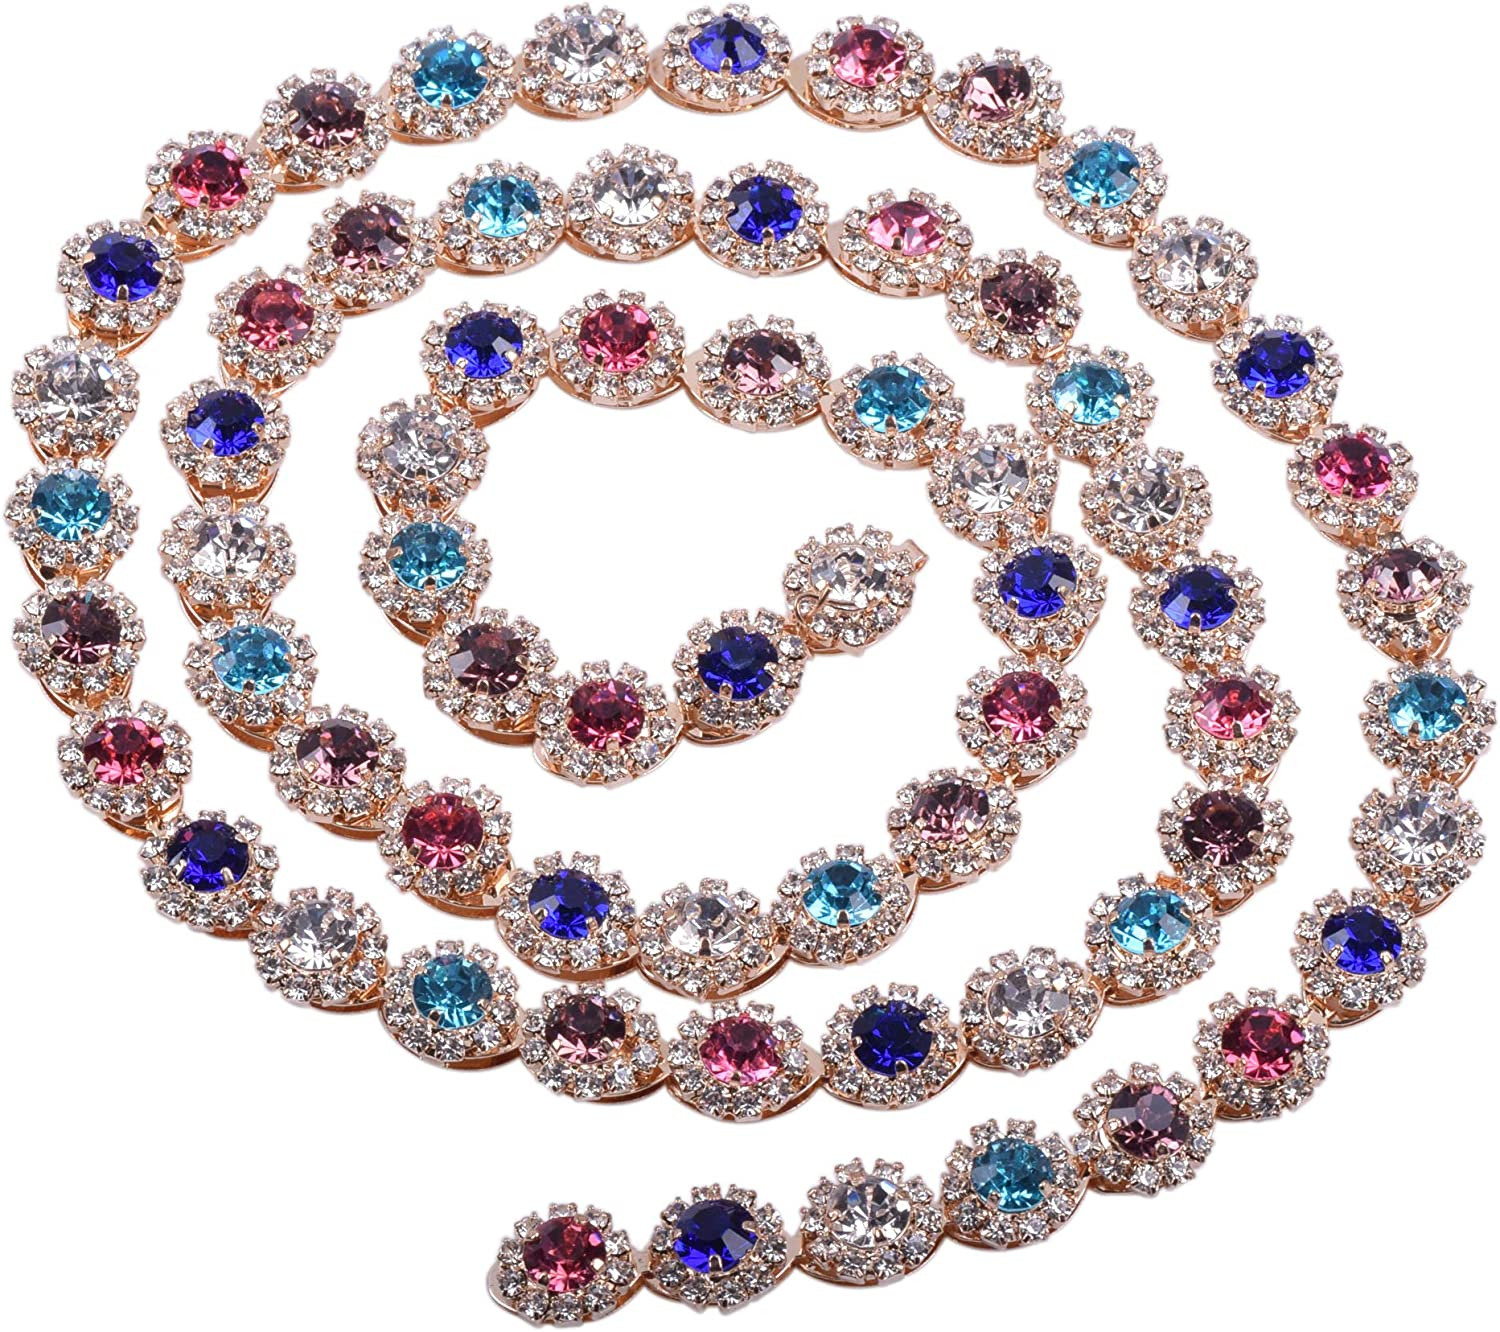 KAOYOO 1 Yard Eye-Shaped Crystal Rhinestone Claw Chain with Inlaid Flower Pattern Rhinestone in The Middle for Wedding Cake Decoration,Sewing Craft or as a Present for Your Friends